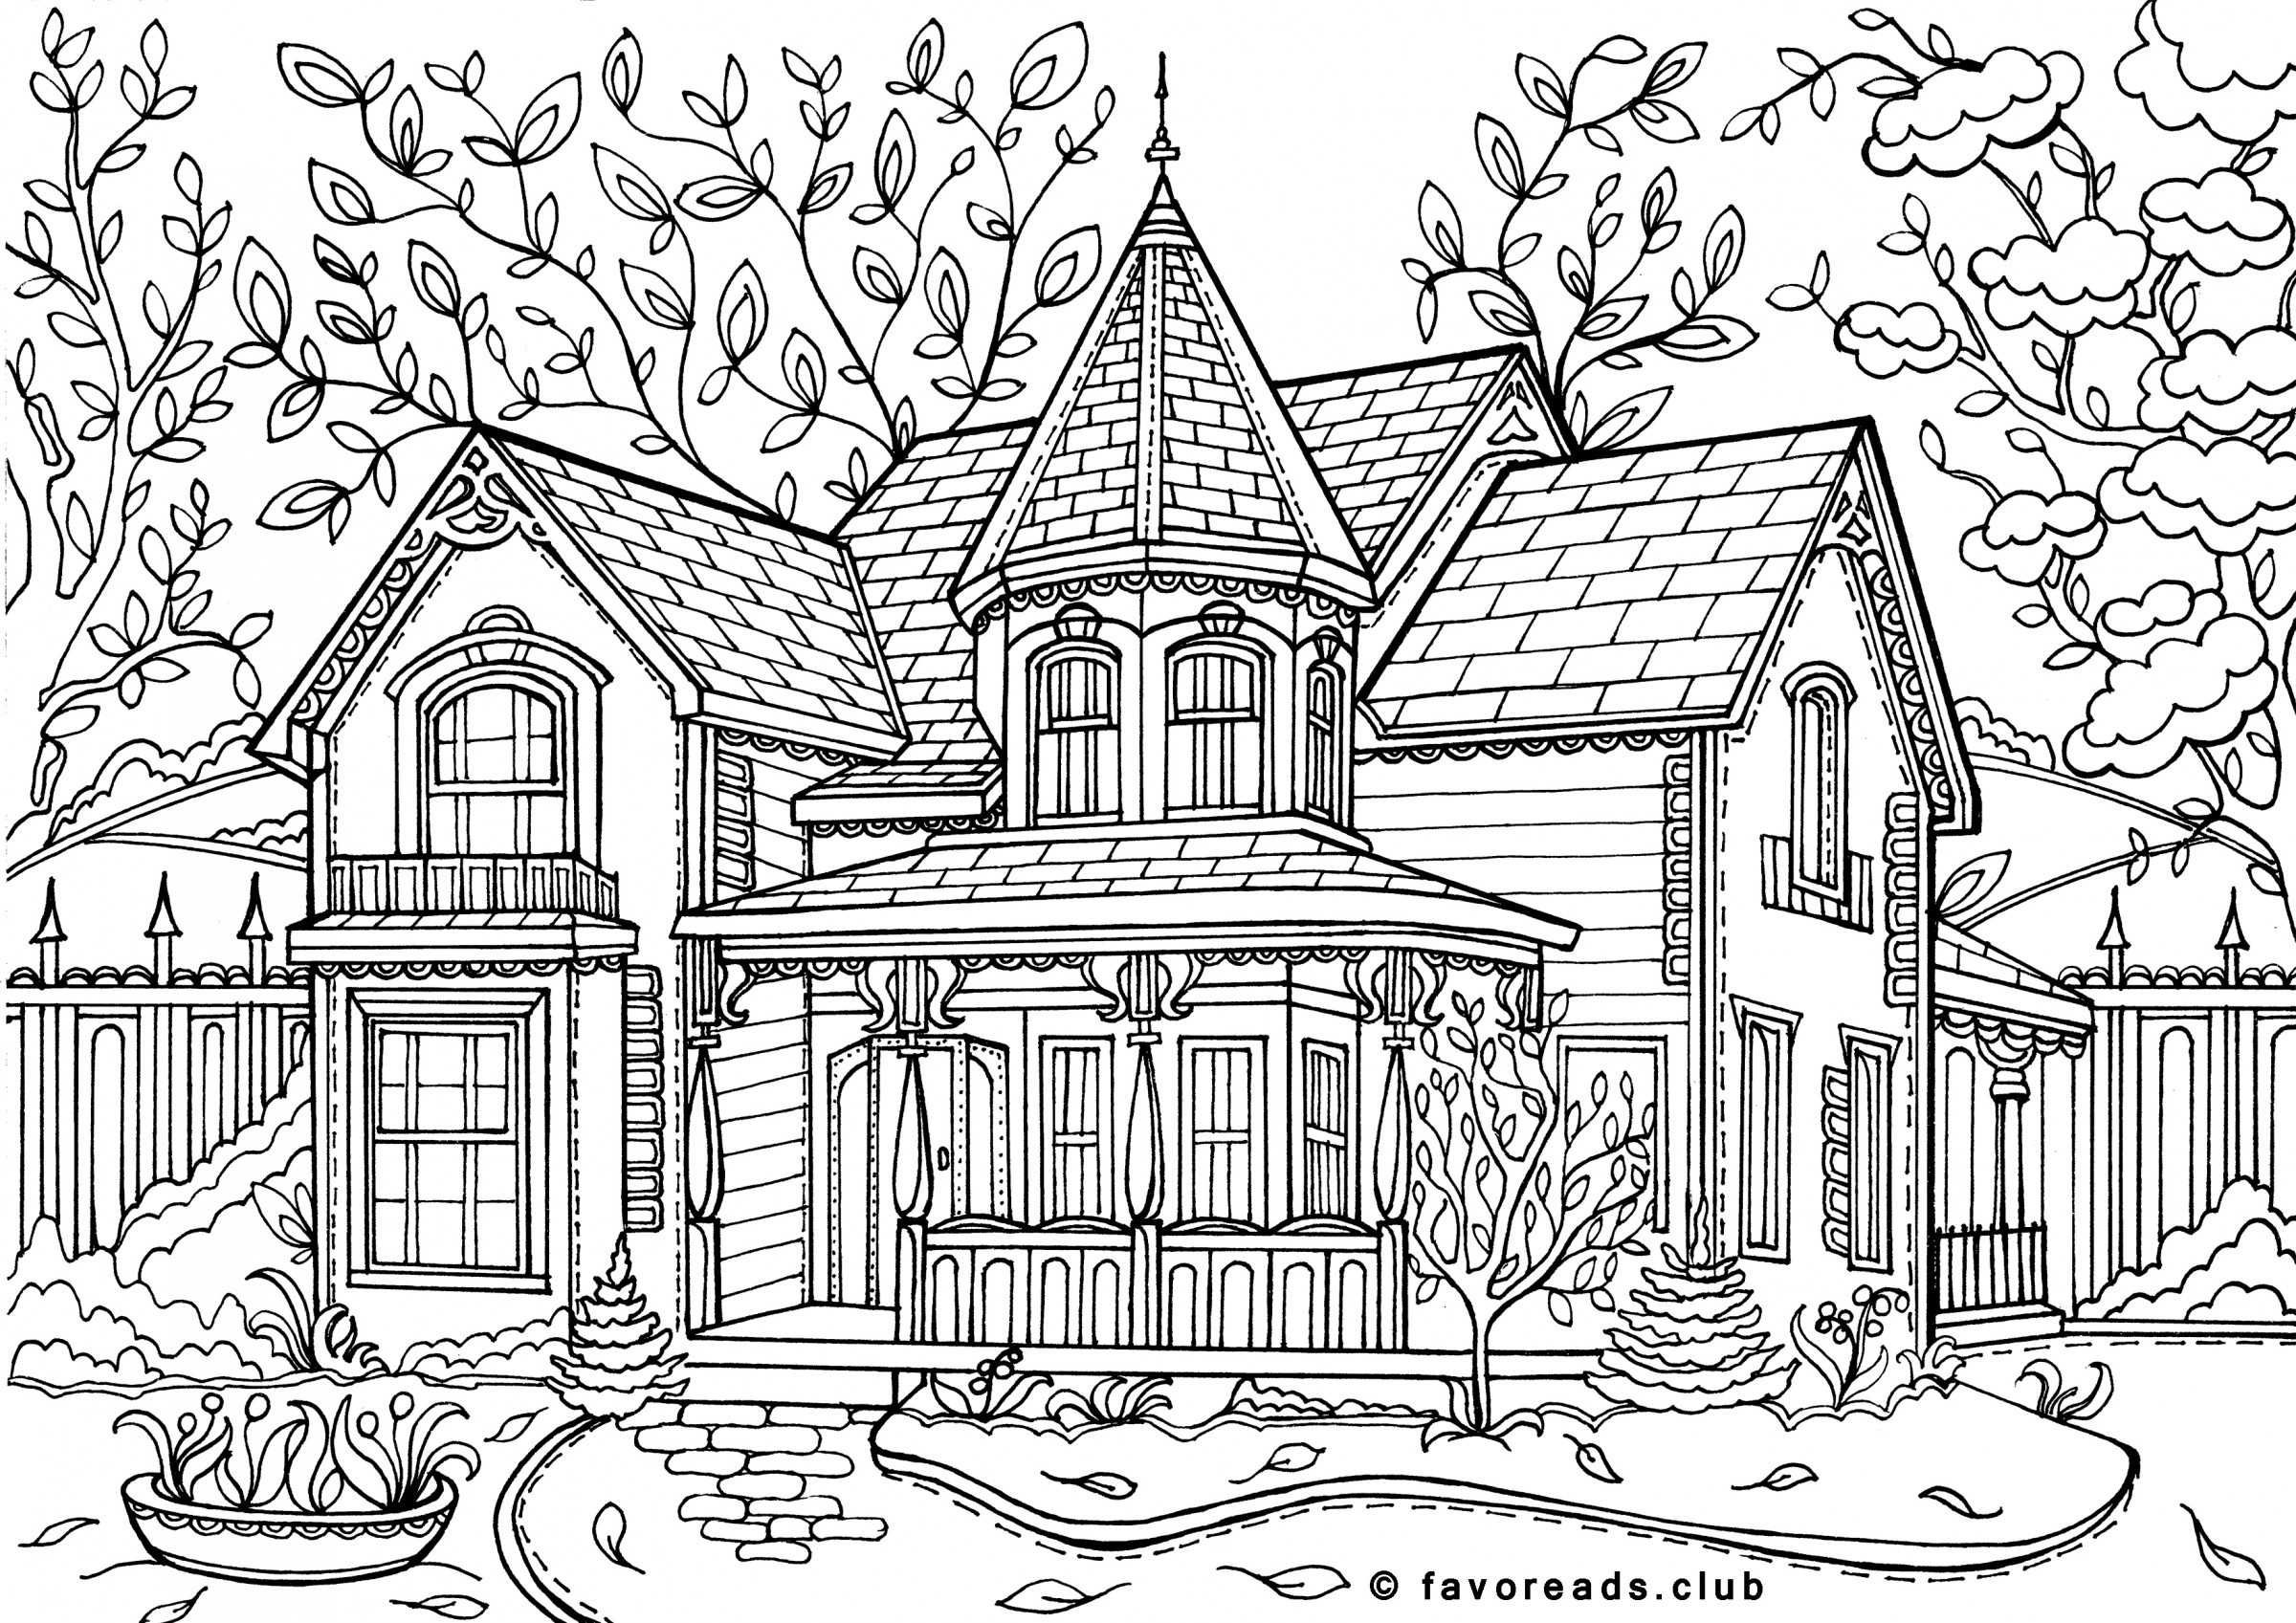 Pin by Graeme on Drawing | House colouring pages, Adult ...